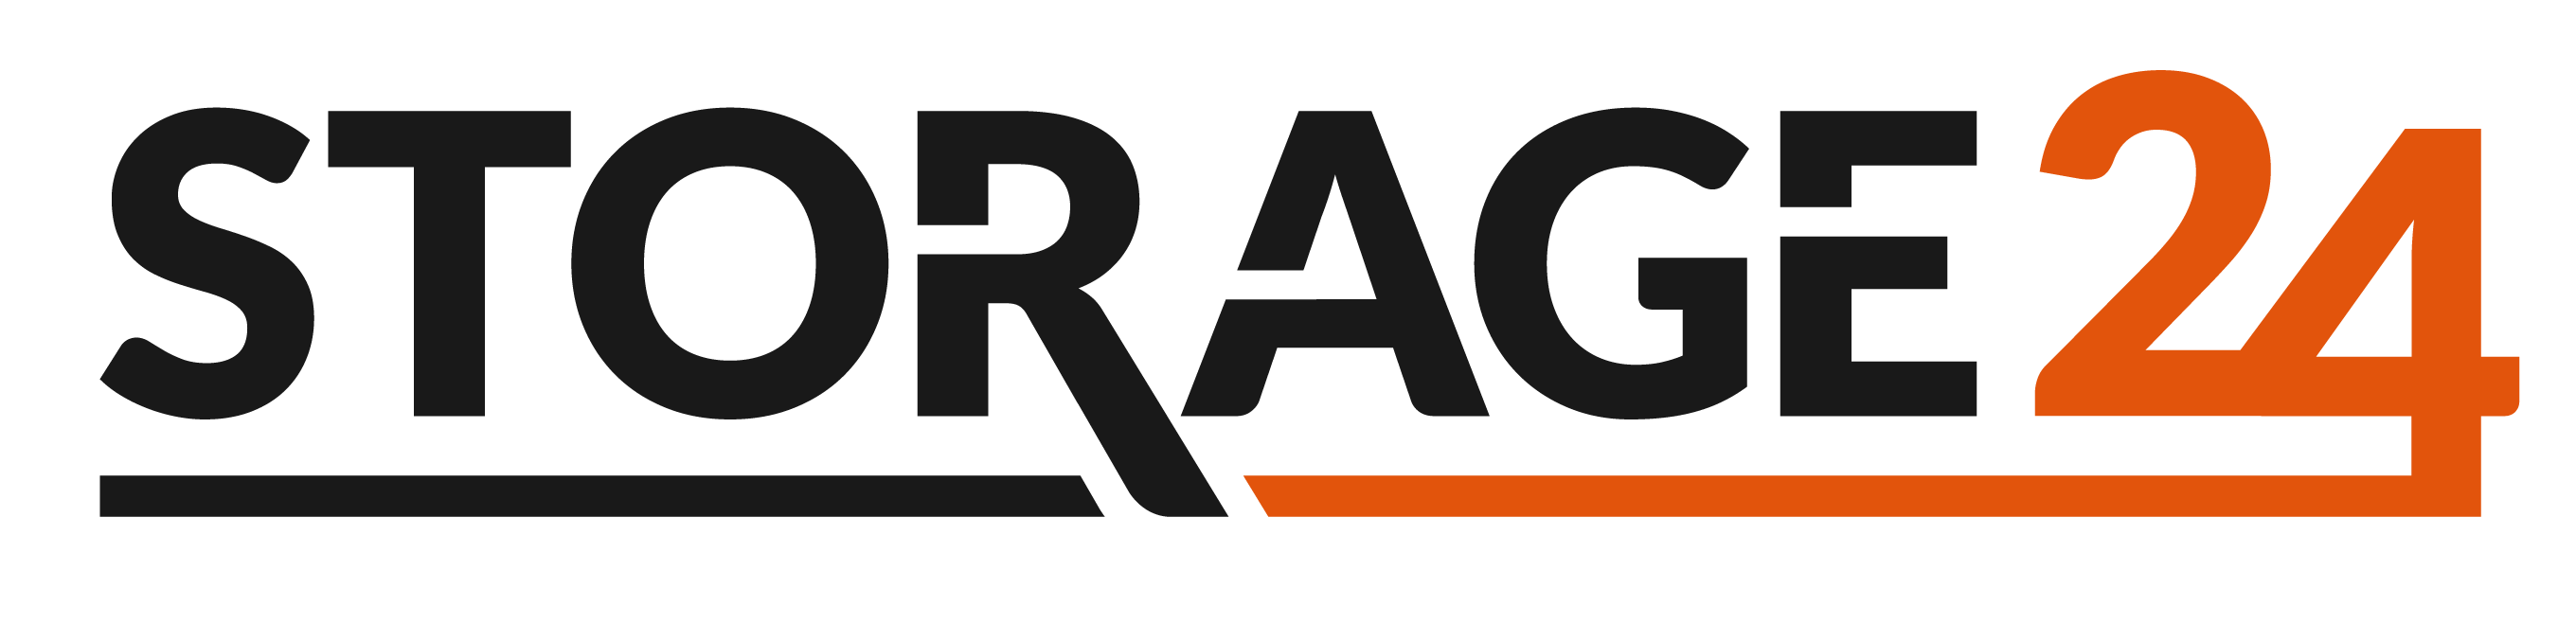 Logo_Web - Grau Orange Storage24